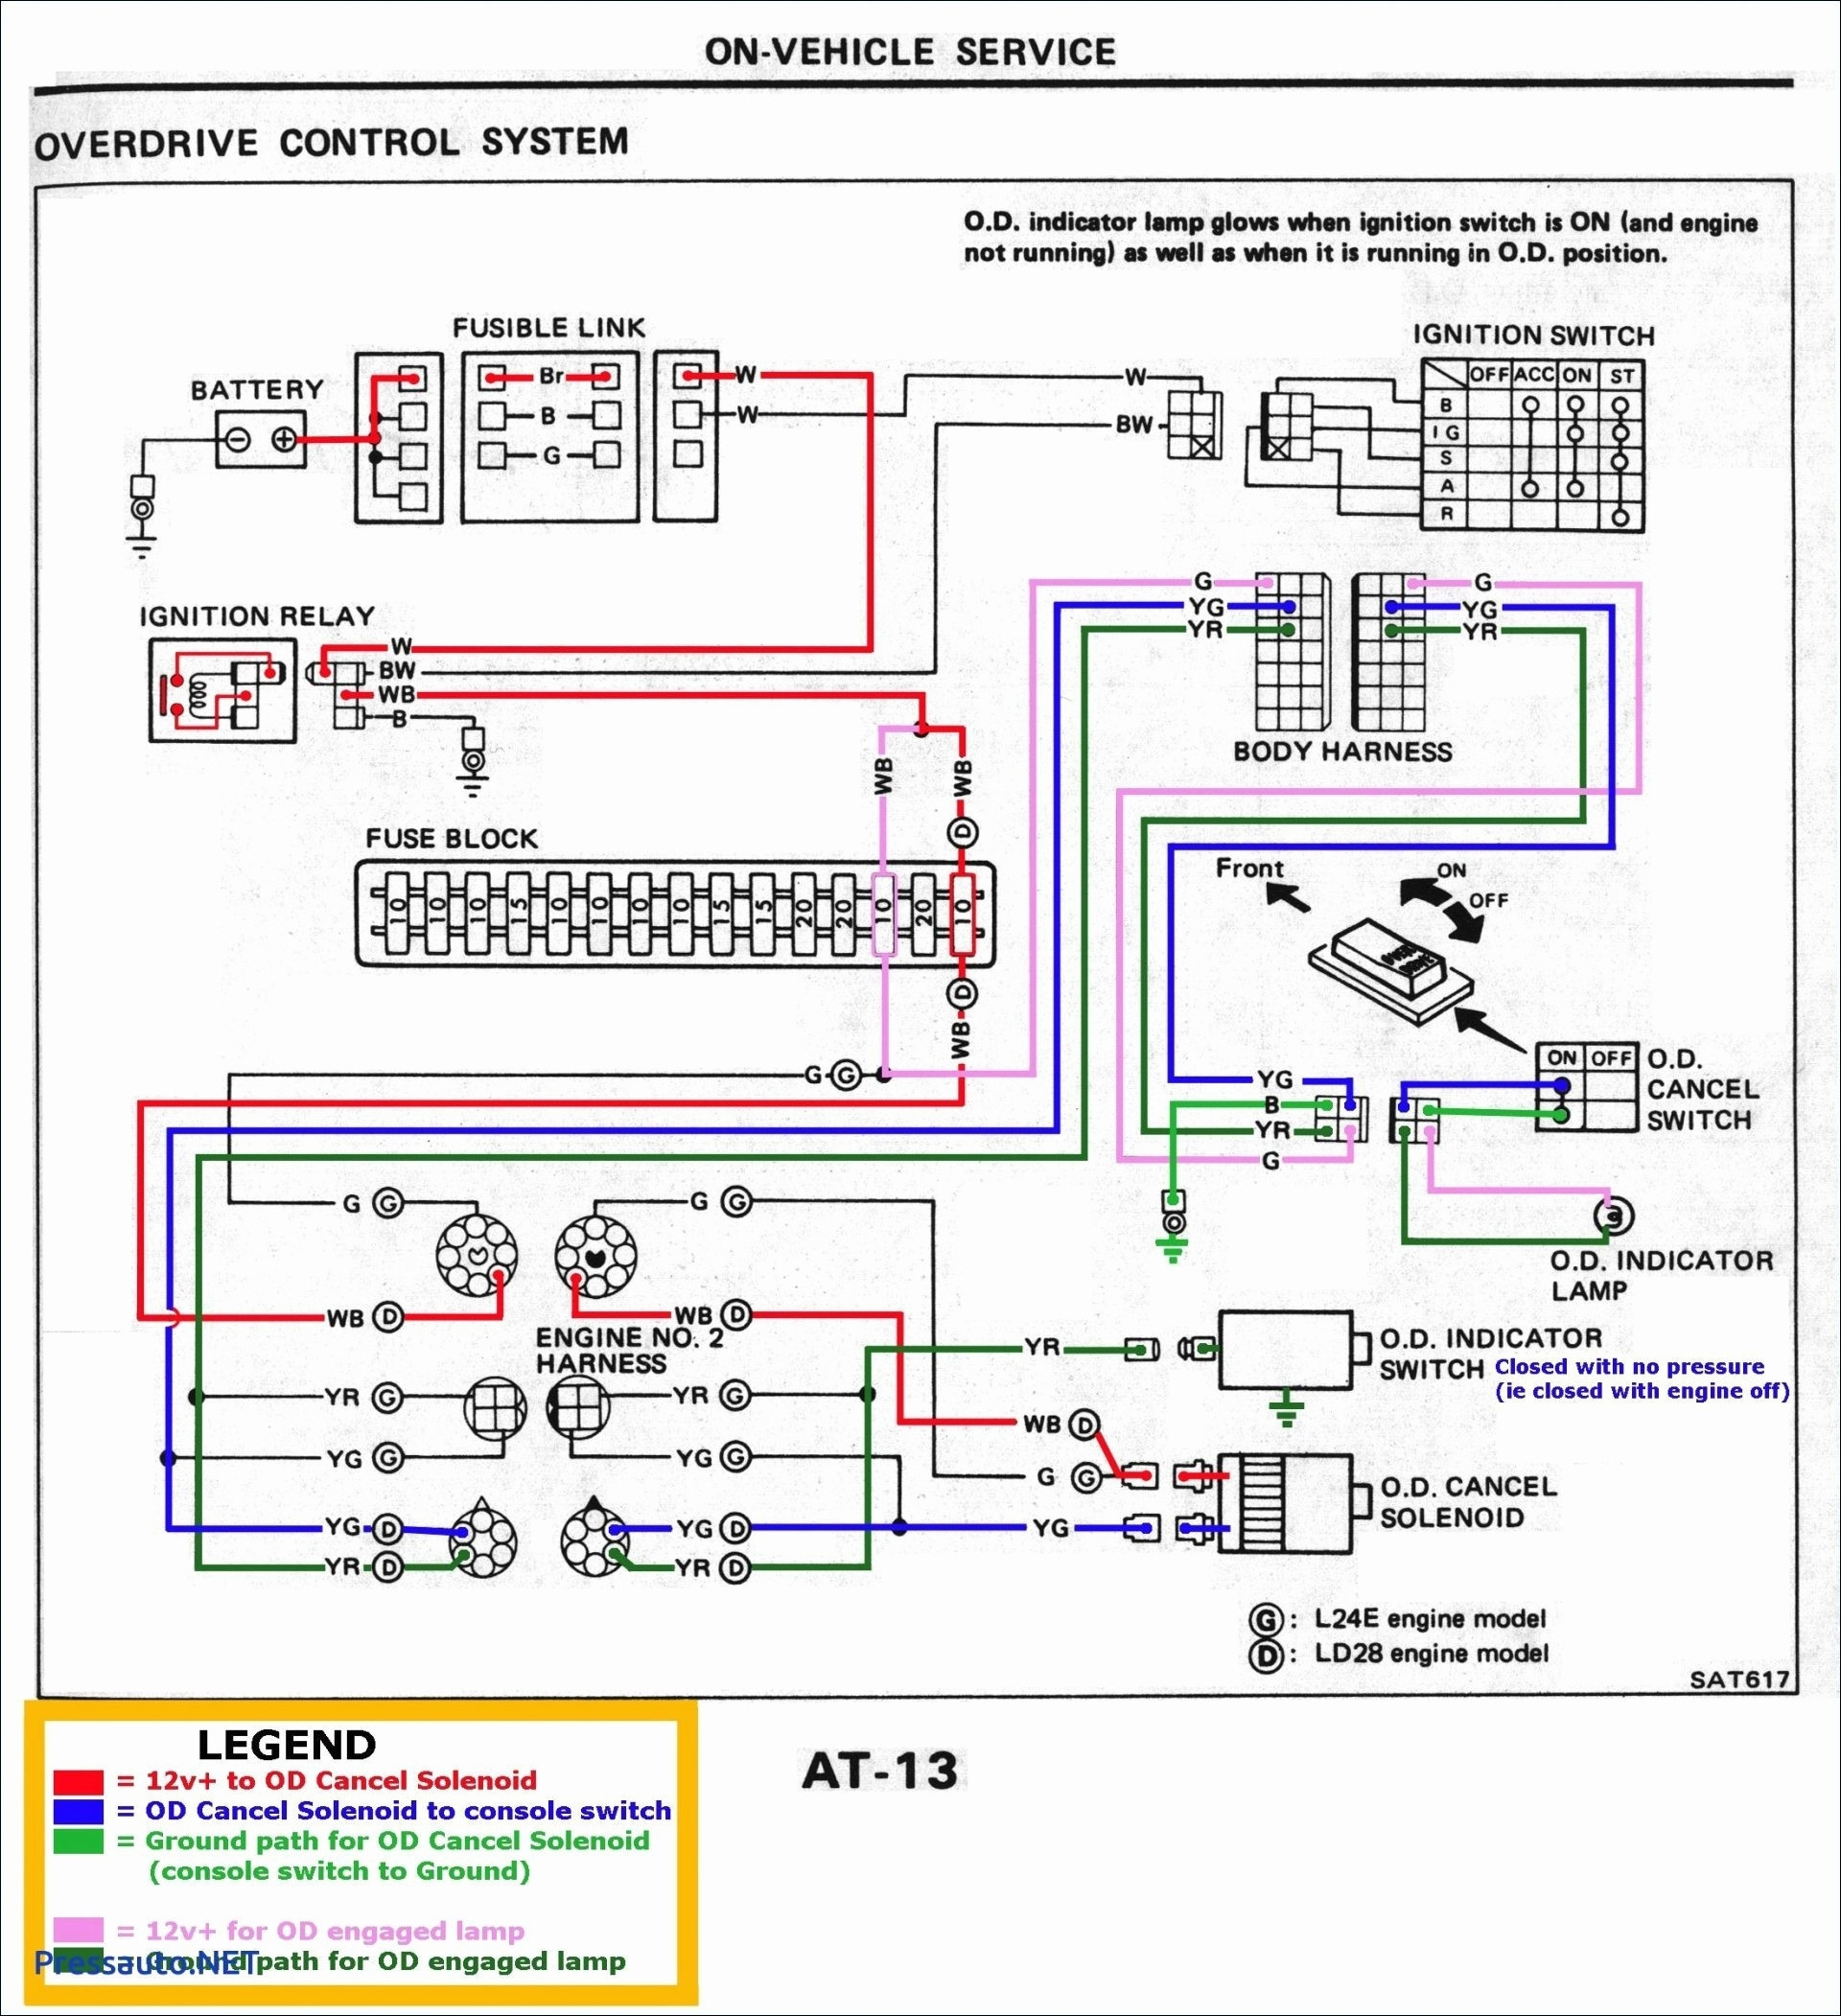 small engine voltage regulator wiring diagram motorola voltage regulator wiring diagram motorola voltage regulator wiring diagram | free wiring ...